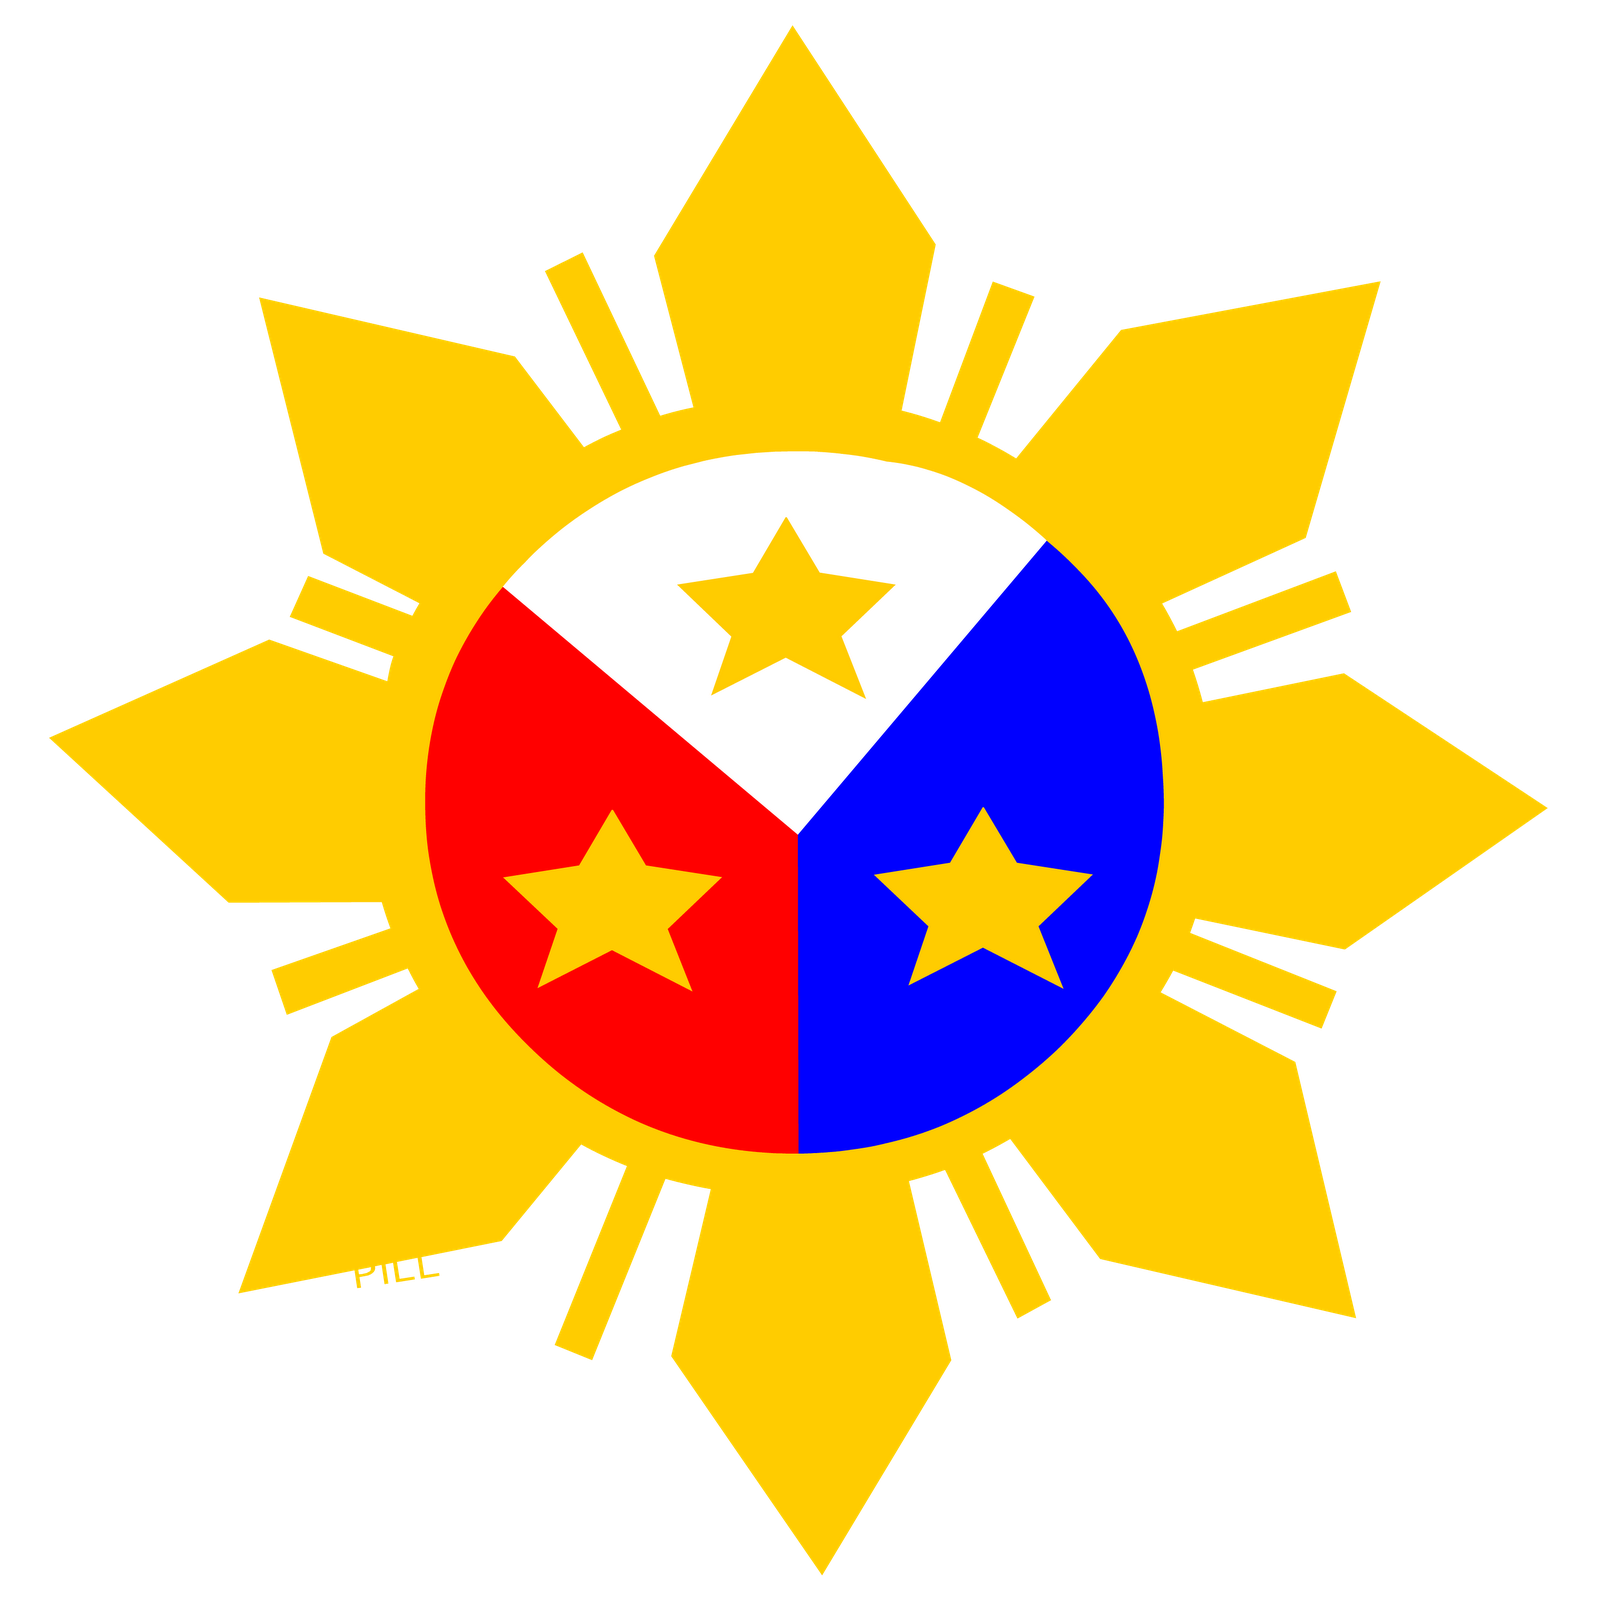 Filipino Flag Images   Clipart Best